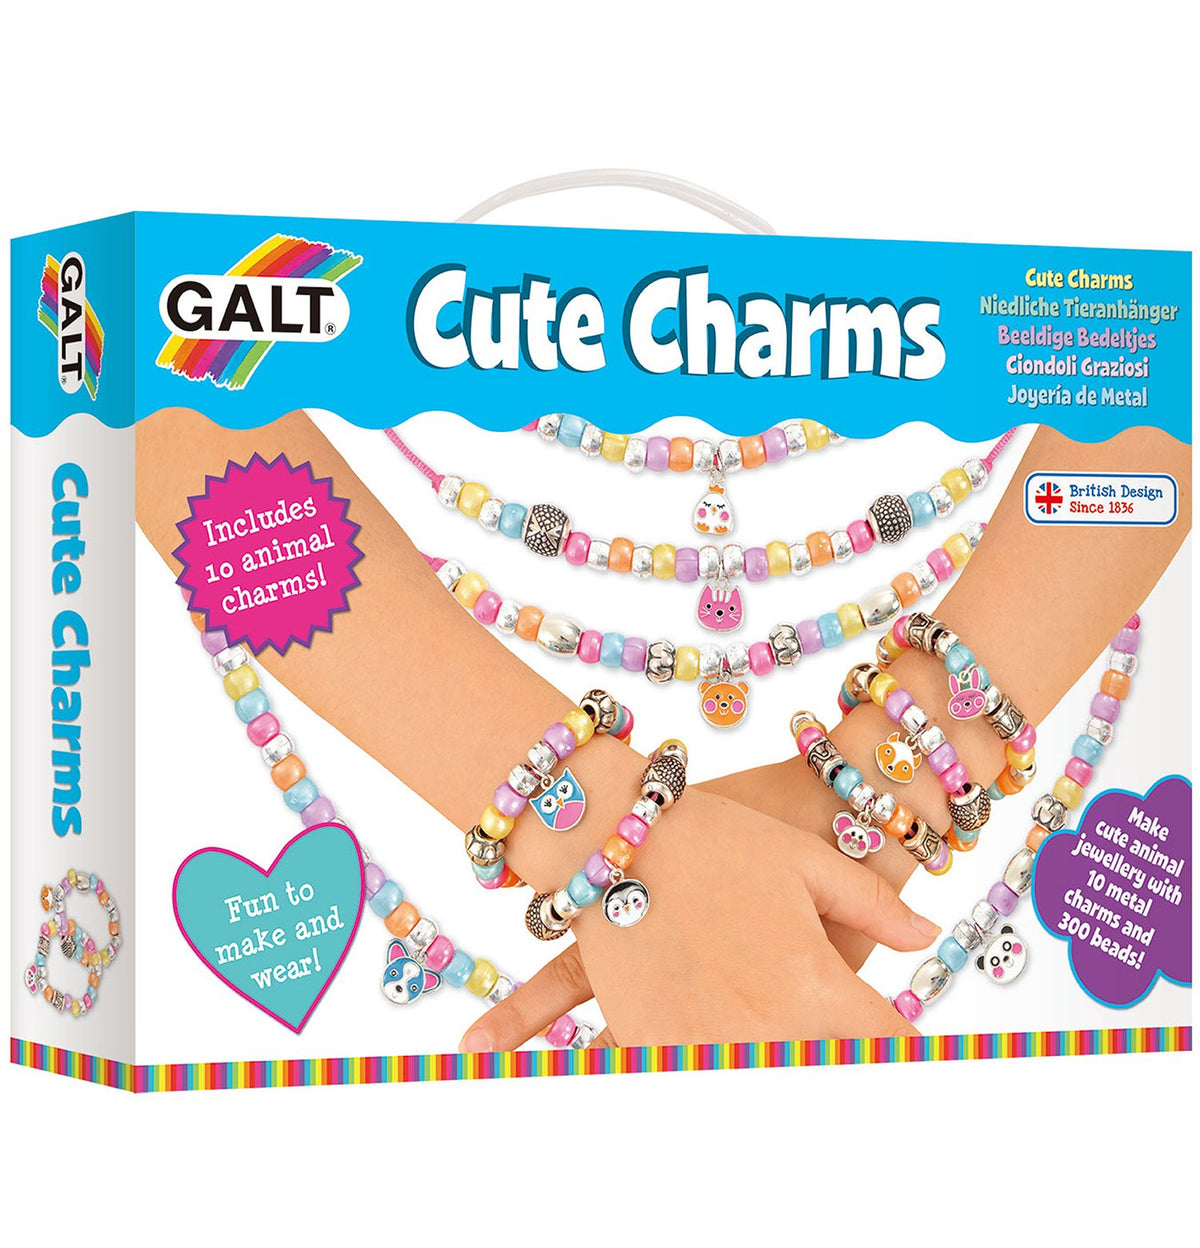 Cute Charms - Galt